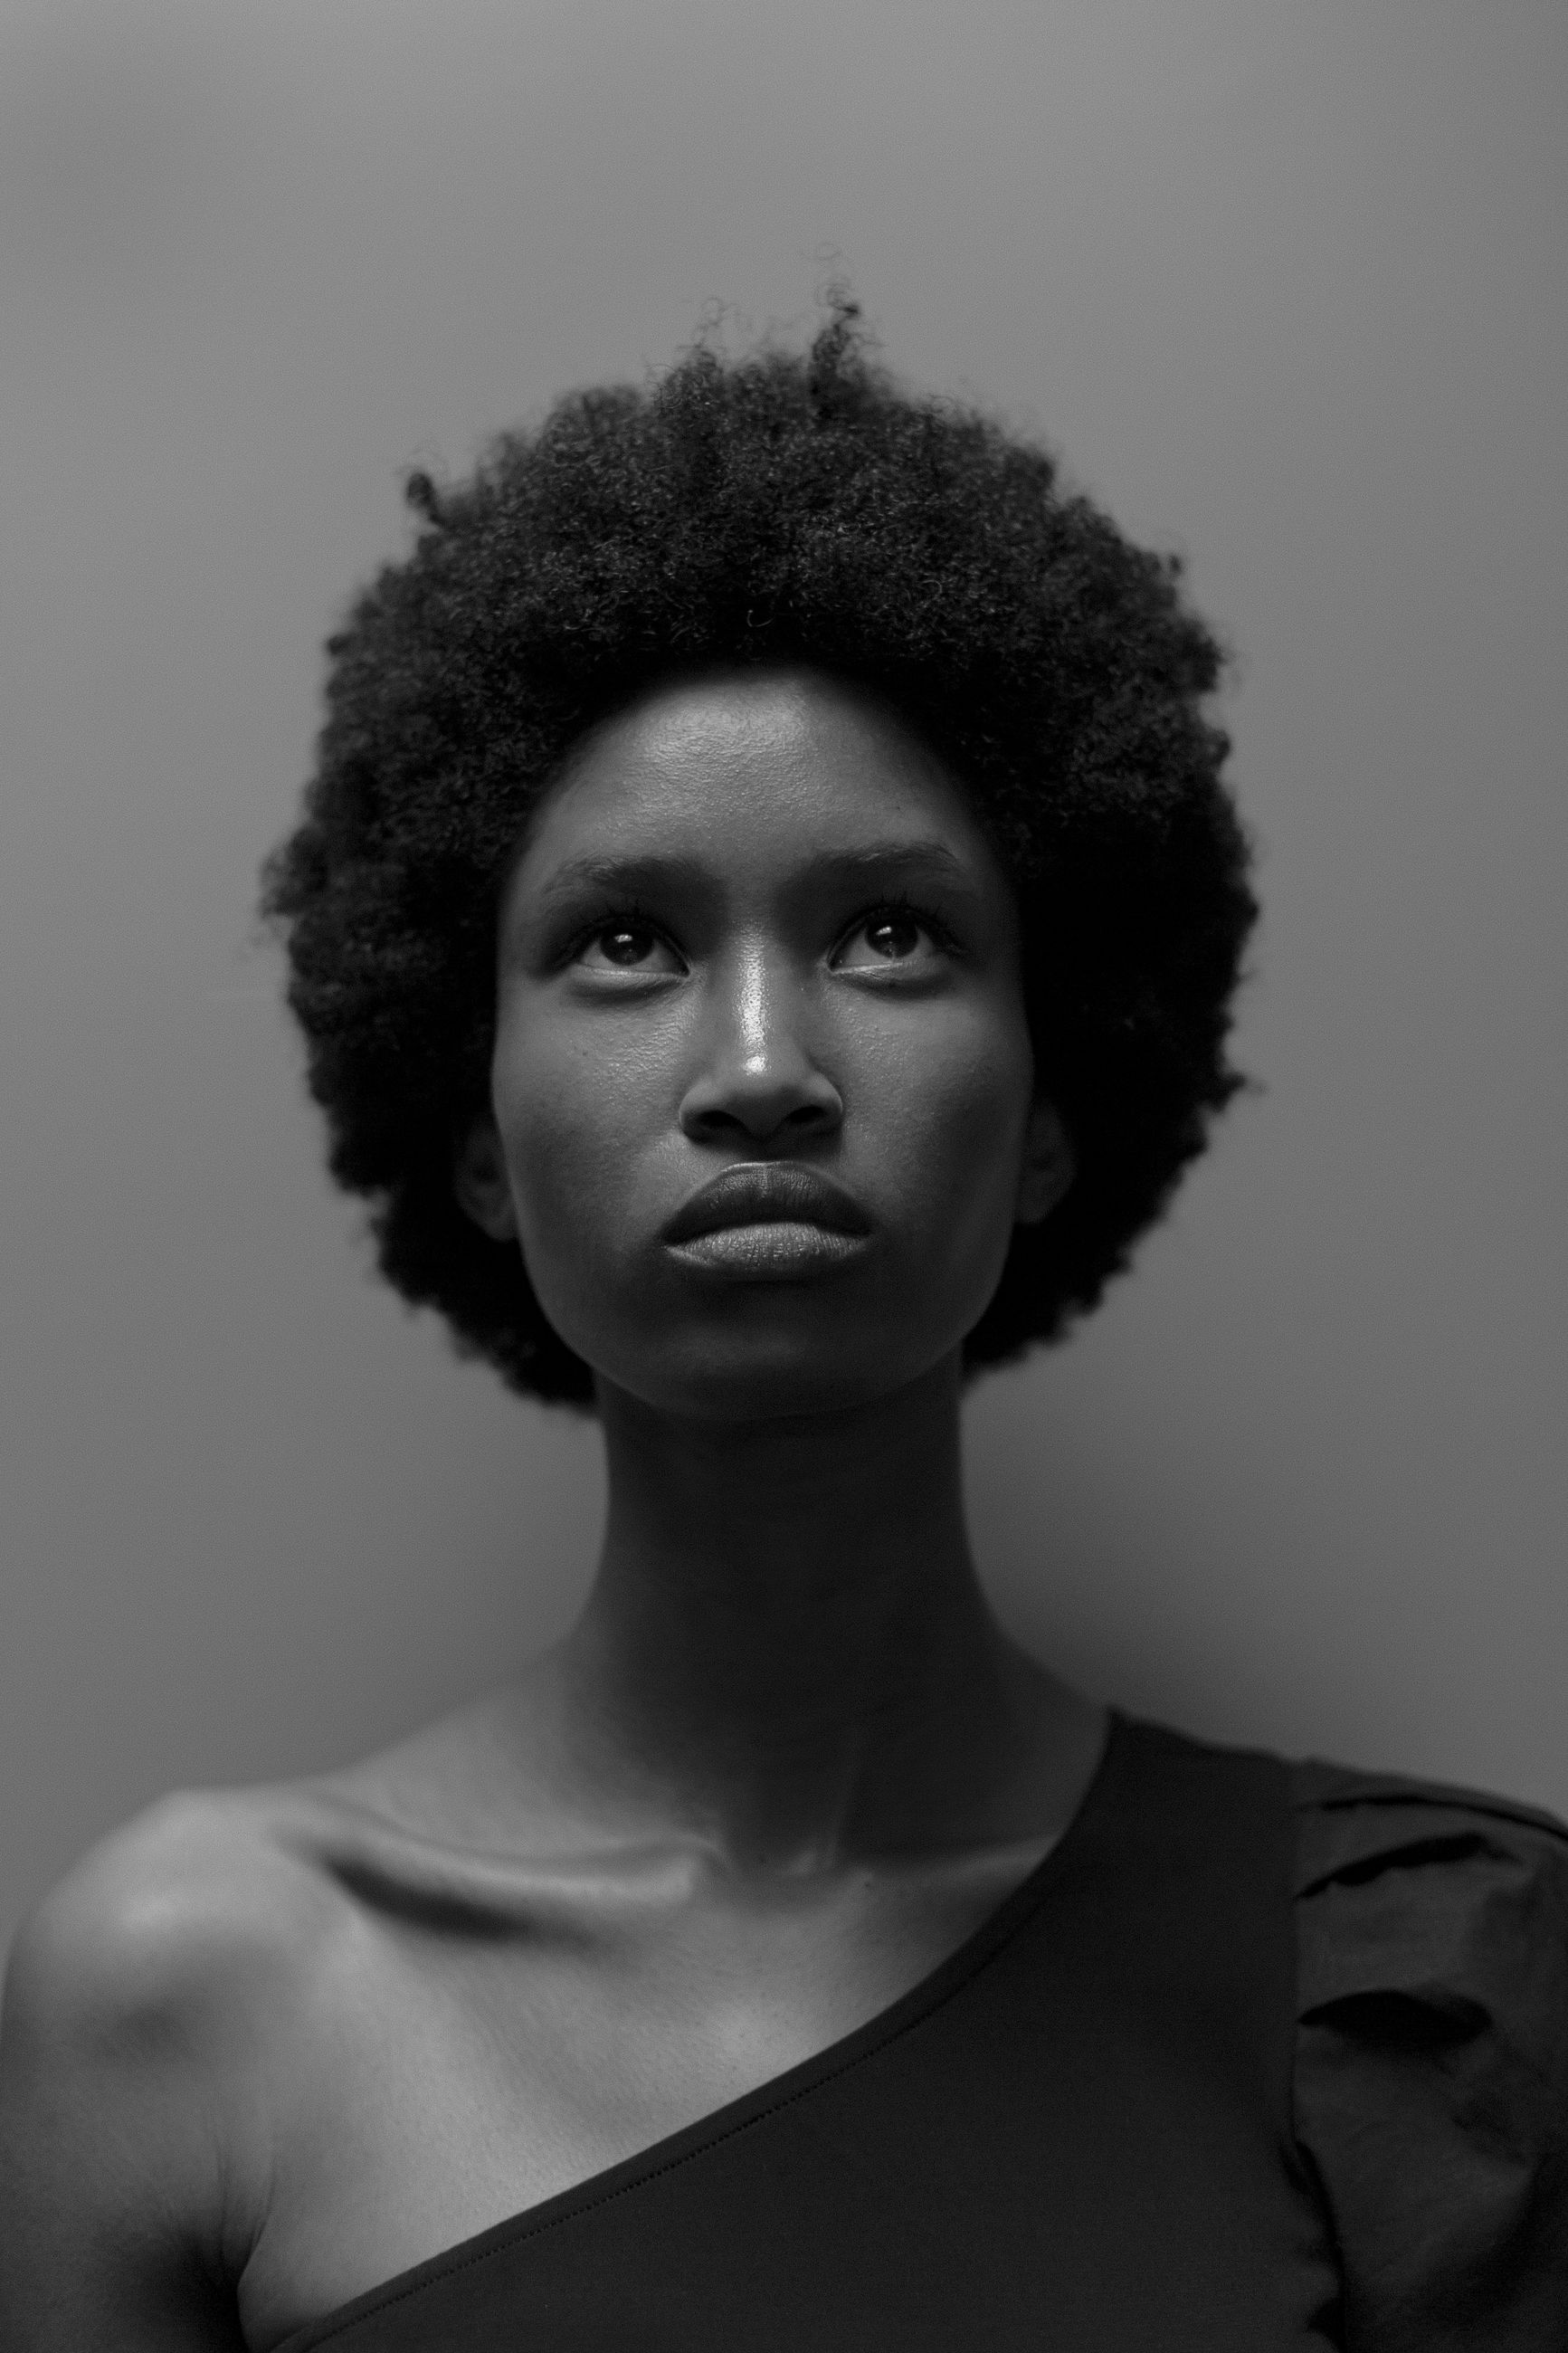 black, portrait, afro, curly hair, black and white, hairstyle, one person, human hair, studio shot, headshot, white, adult, monochrome, young adult, indoors, monochrome photography, looking at camera, front view, women, serious, gray background, individuality, fashion, gray, short hair, human face, close-up, person, looking